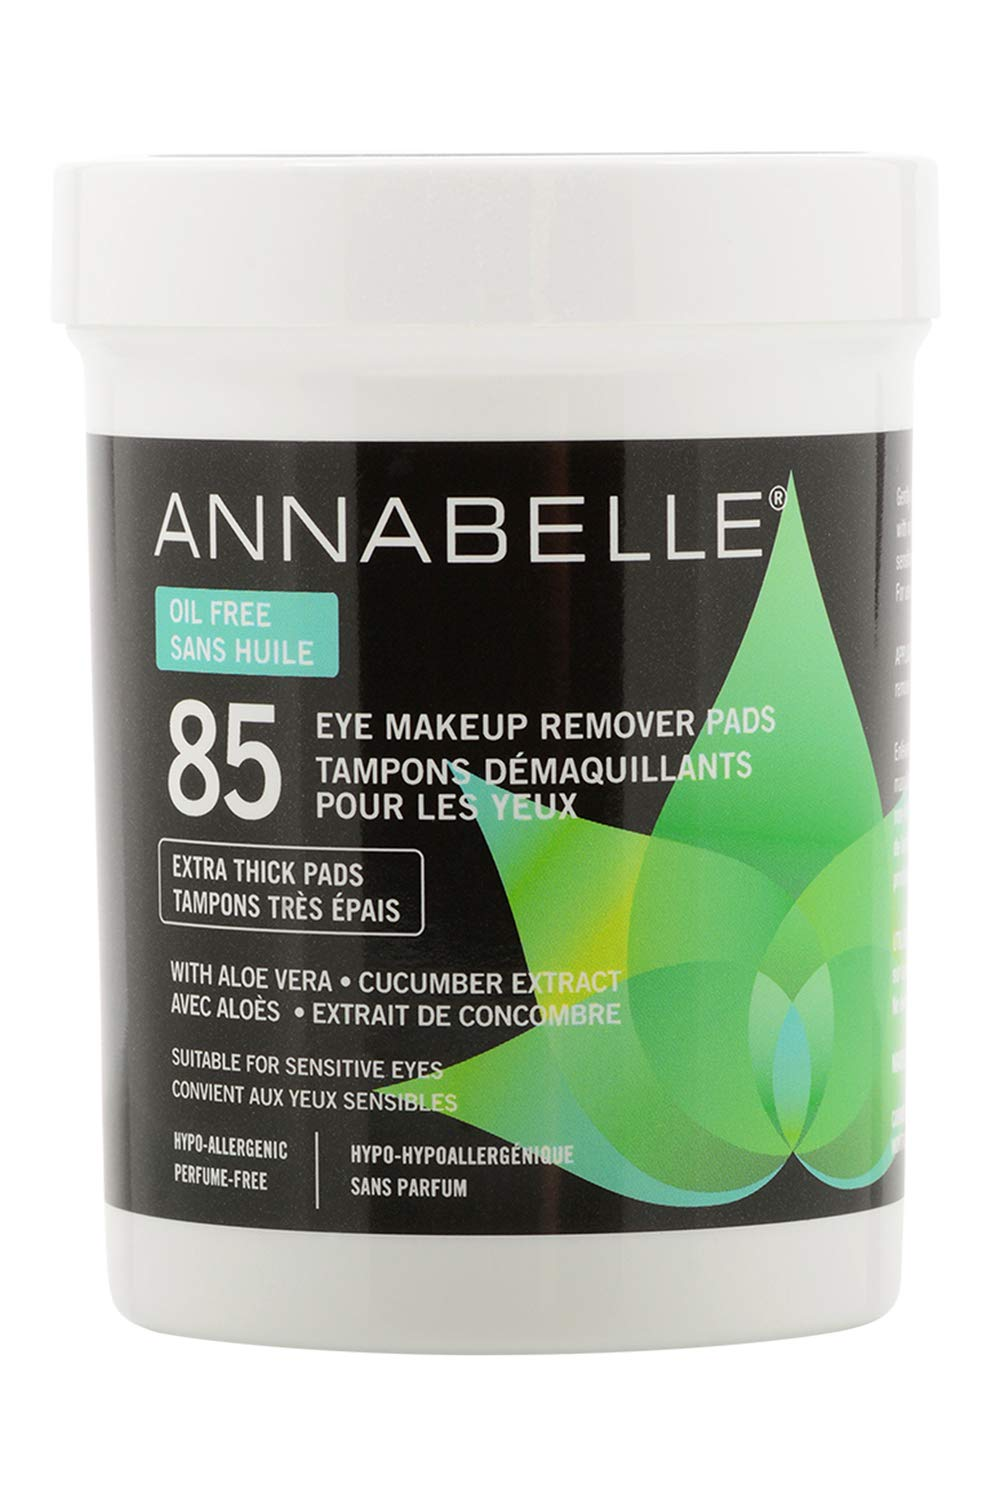 Annabelle Oil-Free Eye Makeup Remover Pads, 85 pads Groupe Marcelle Inc.